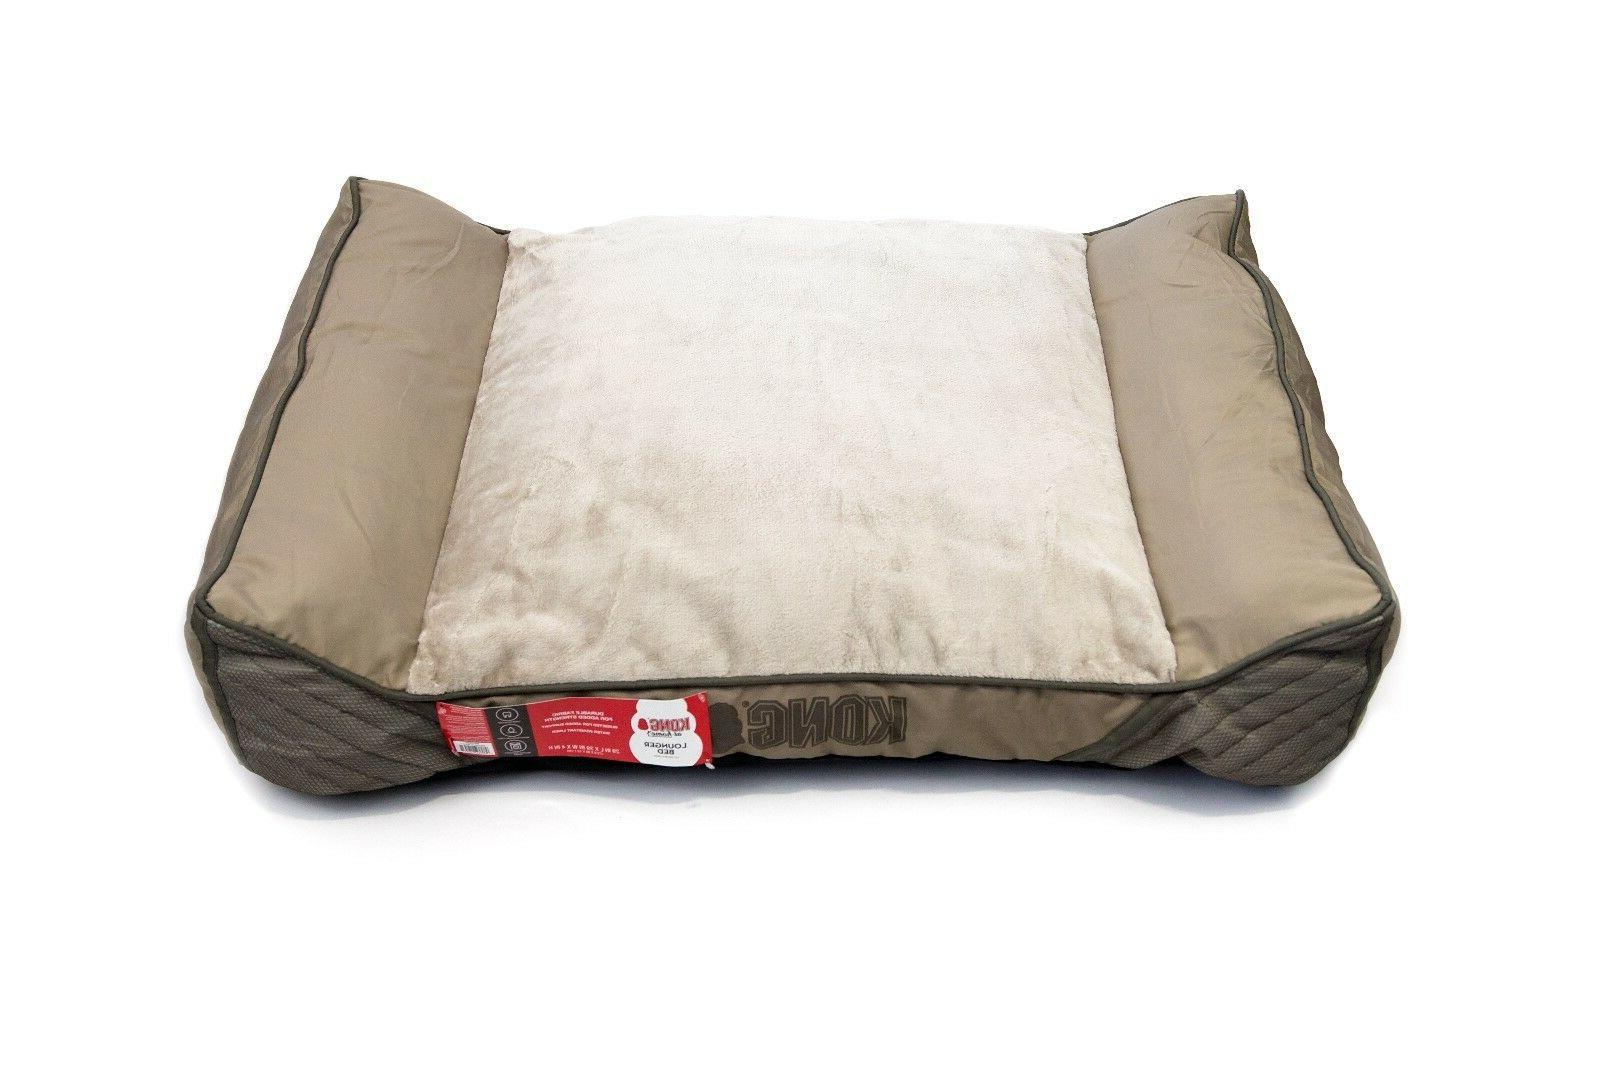 Kong Bed - Khaki - Resistant - Machine Cover